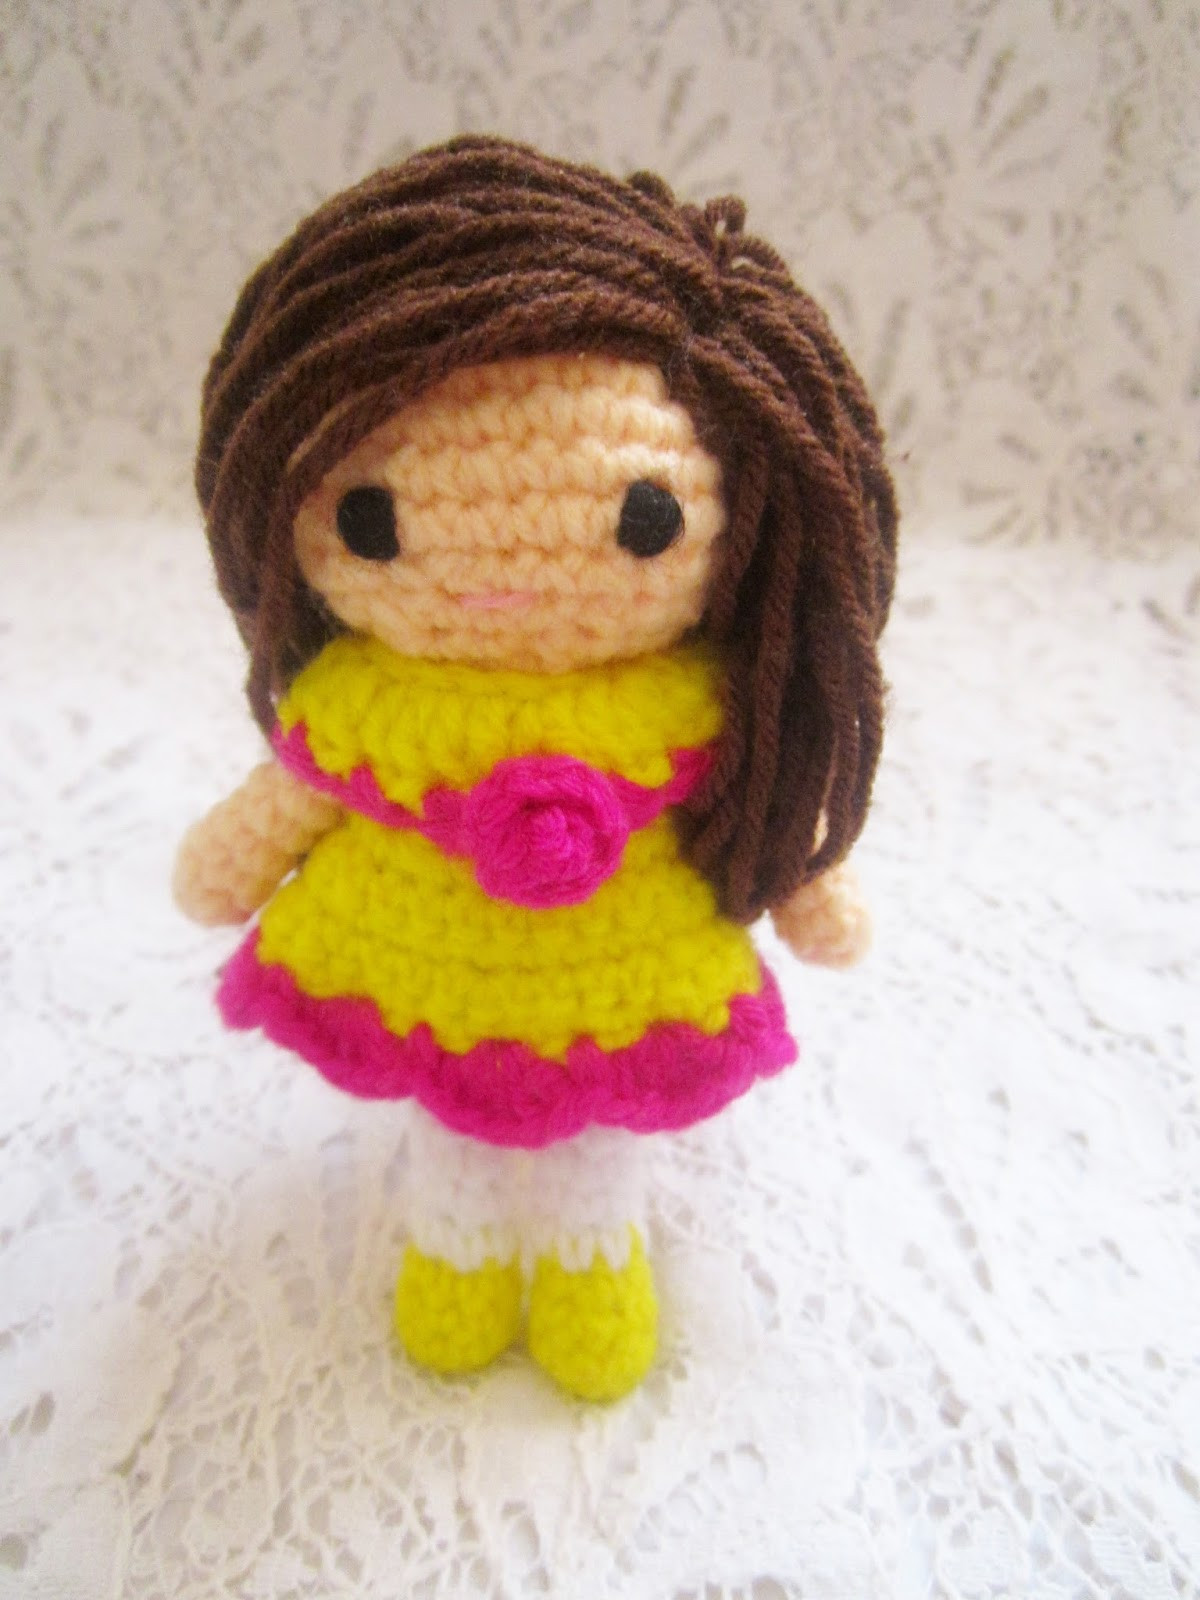 Best Of Little Amigurumi Doll Pattern A Little Love Everyday Free Doll Patterns Of Unique 47 Photos Free Doll Patterns